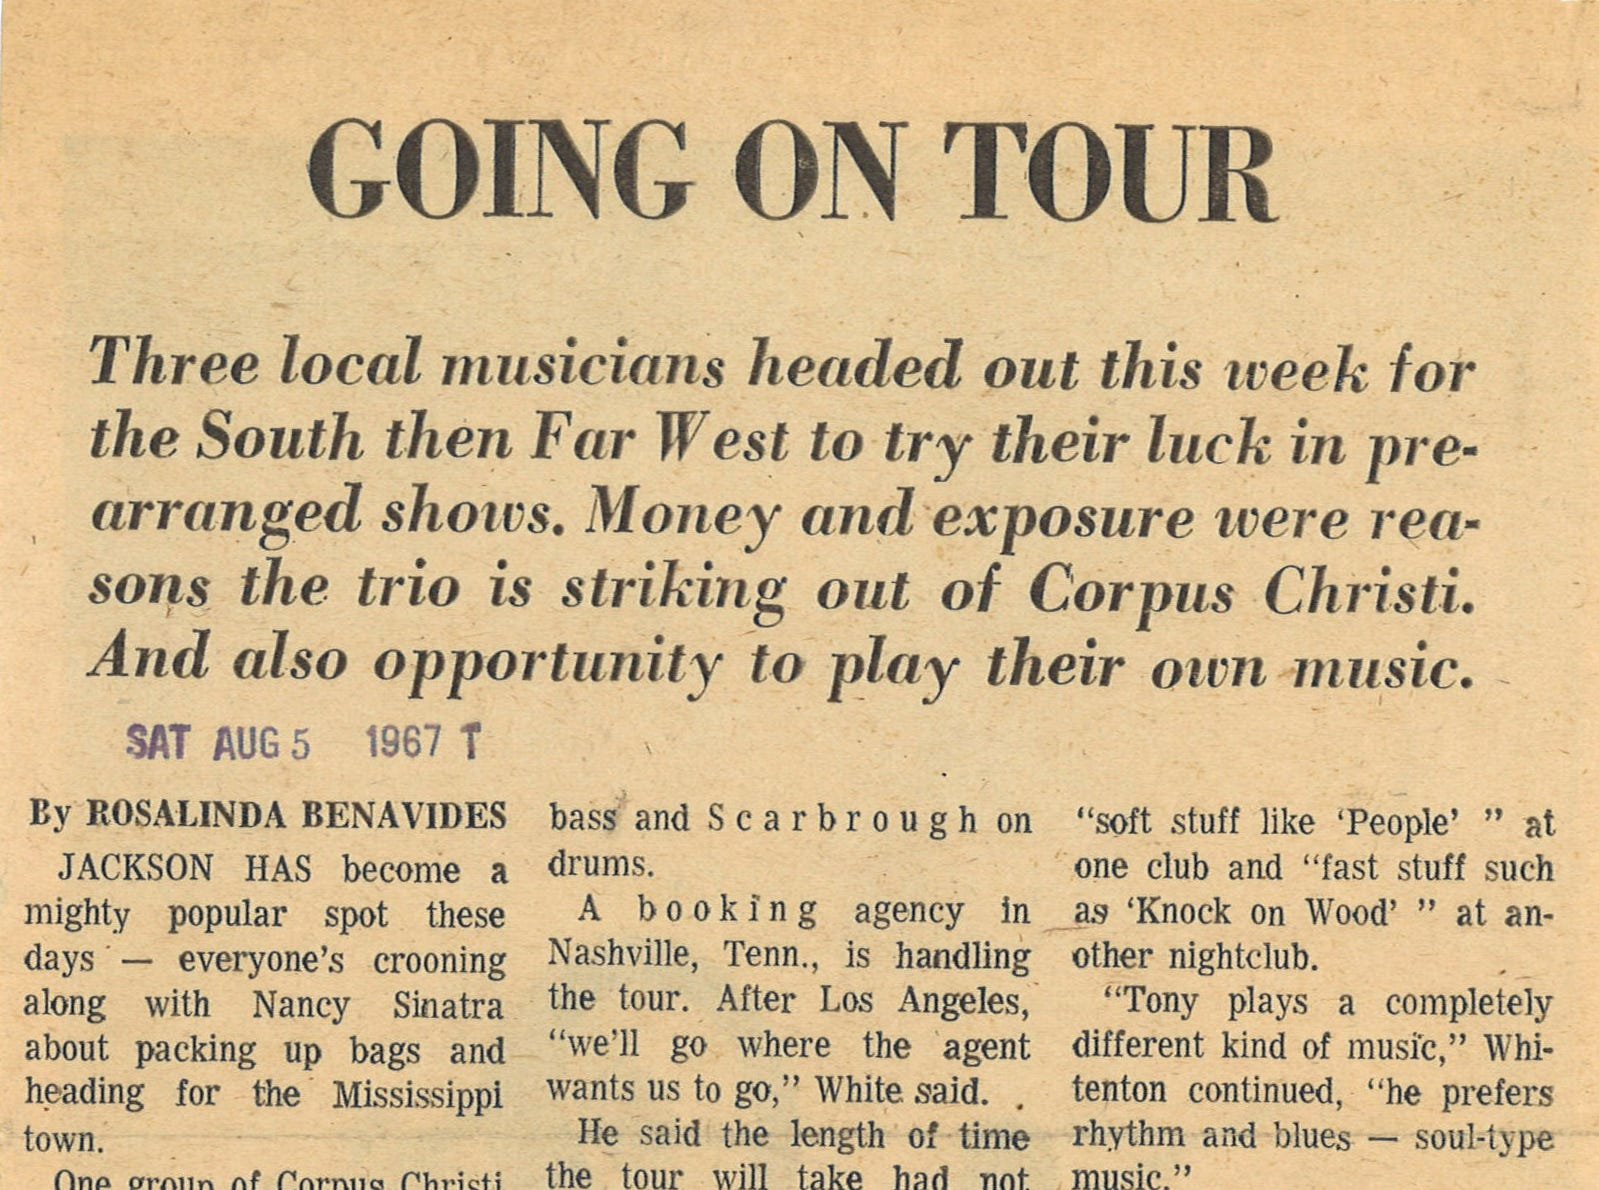 Article on swamp rock musician Tony Joe White from the Aug. 5, 1967 Caller-Times. White lived in Corpus Christi with his wife and kids for several years in the late 1960s.